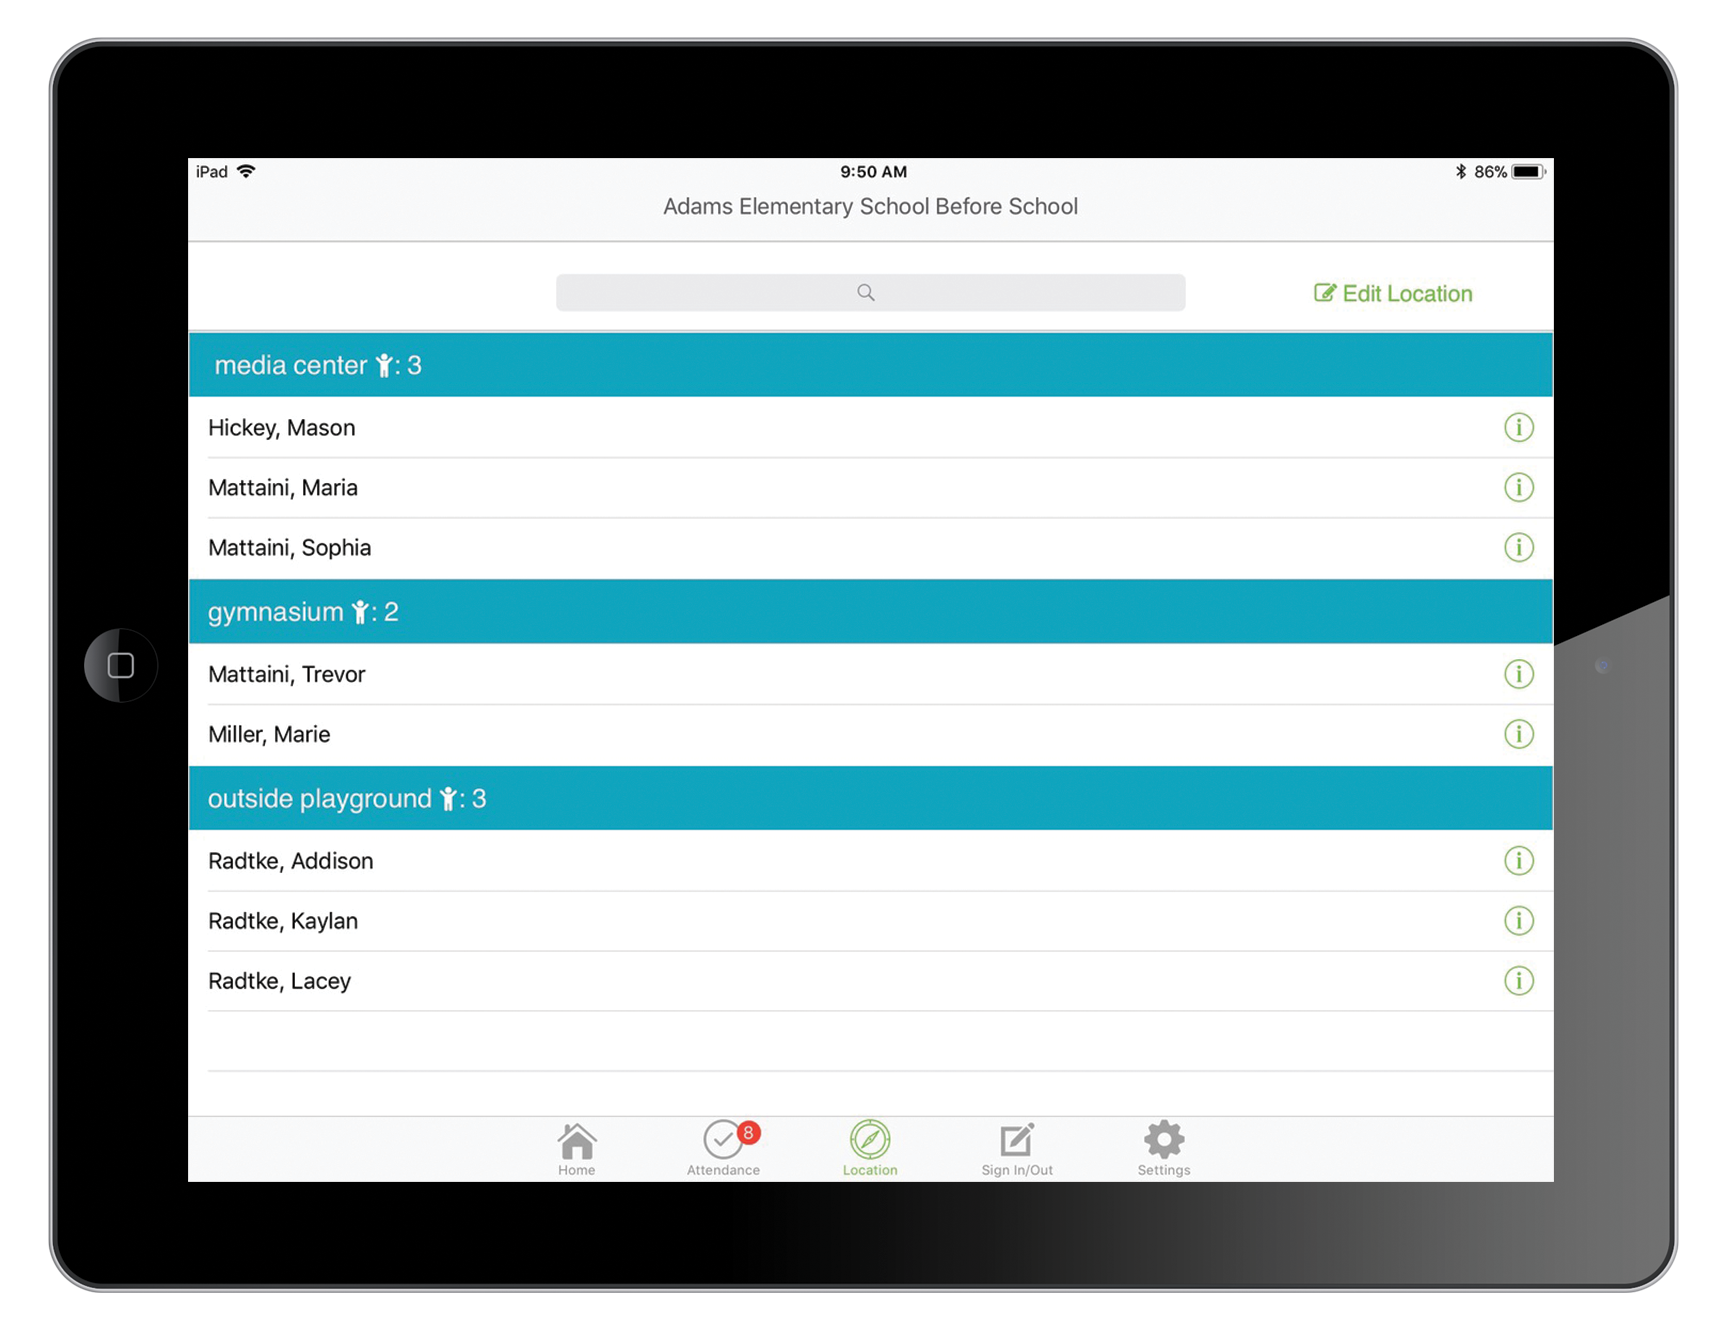 Eleyo's iPad Attendance App helps school age child care programs during fire drills and emergencies